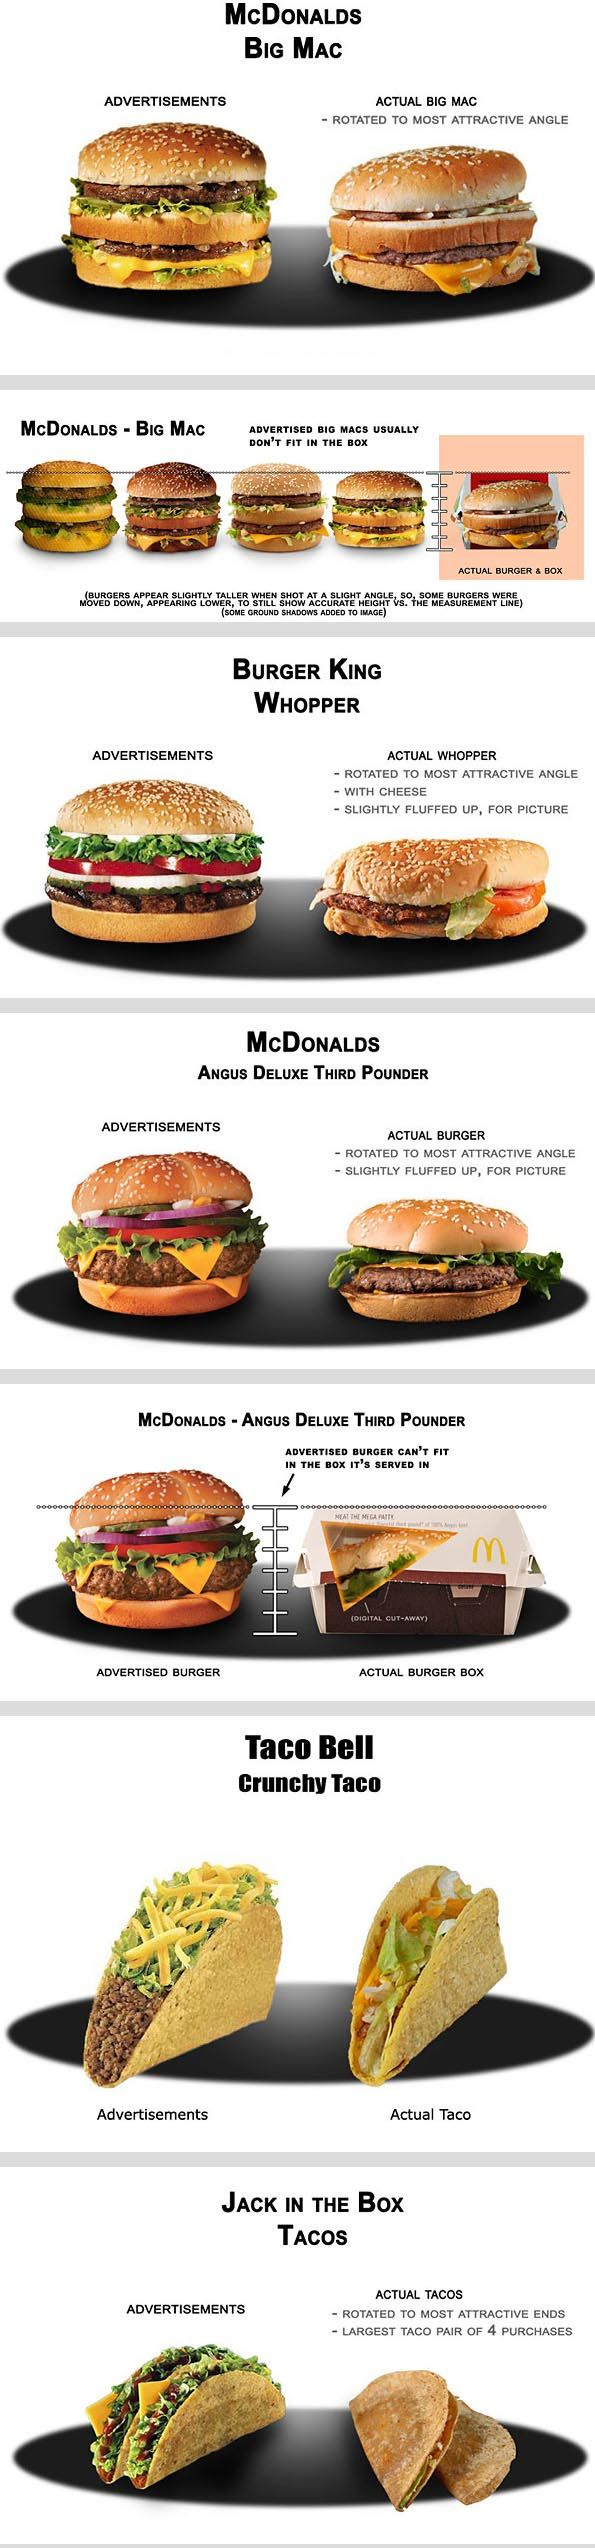 Best Photoshop Fail Images On Pinterest Advertising - Fast food ads vs reality the truth unveiled by these photos